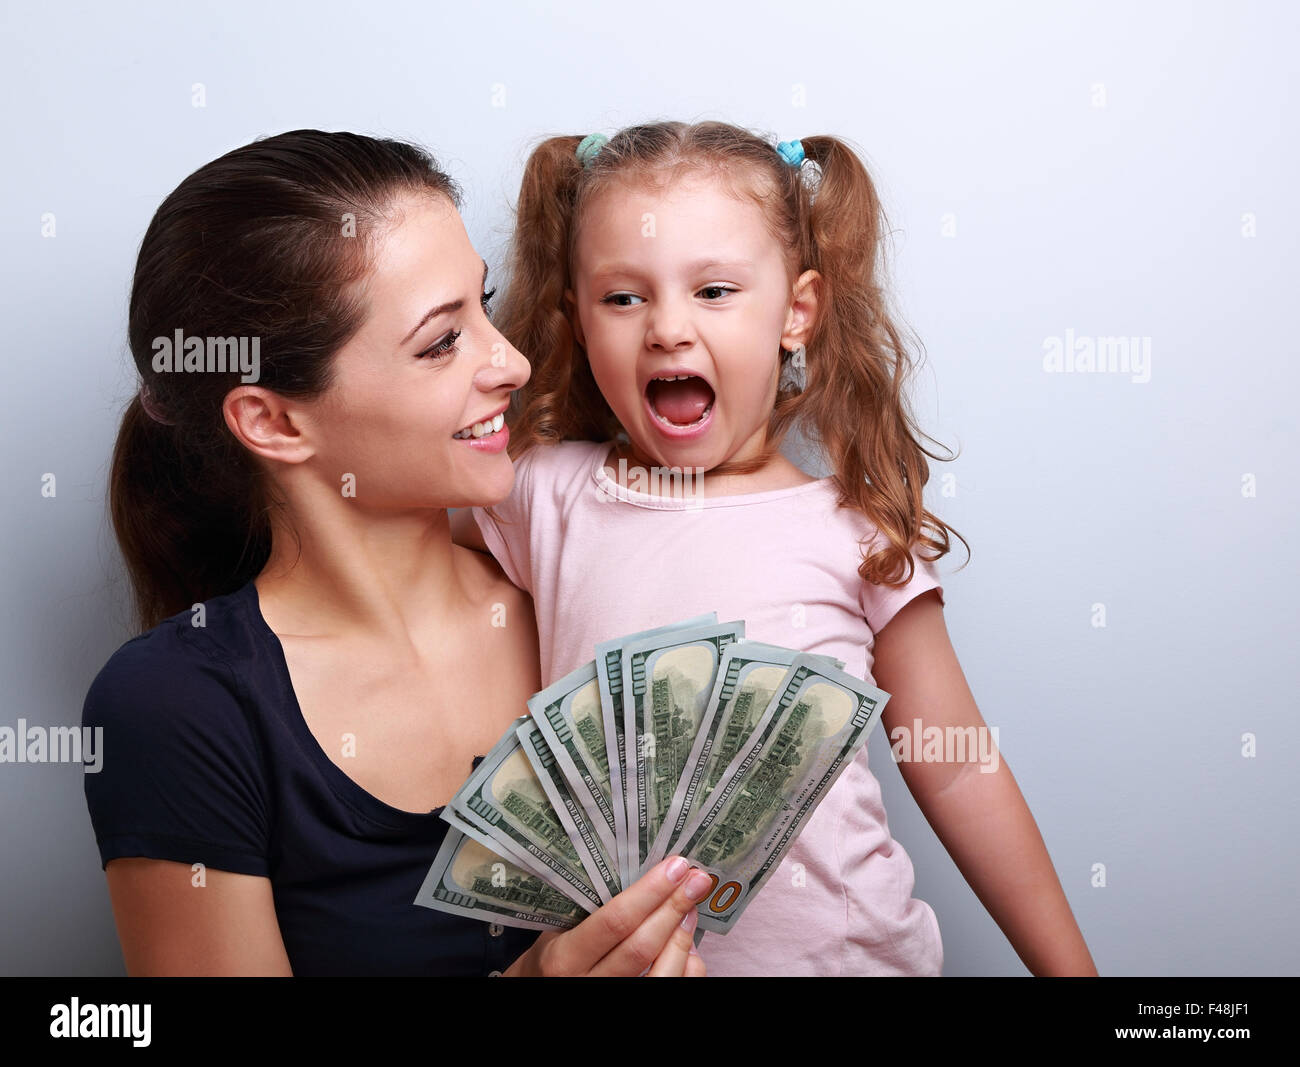 Happy smiling family holding dollars and thinking how to spend the money. Portrait on blue background with empty - Stock Image